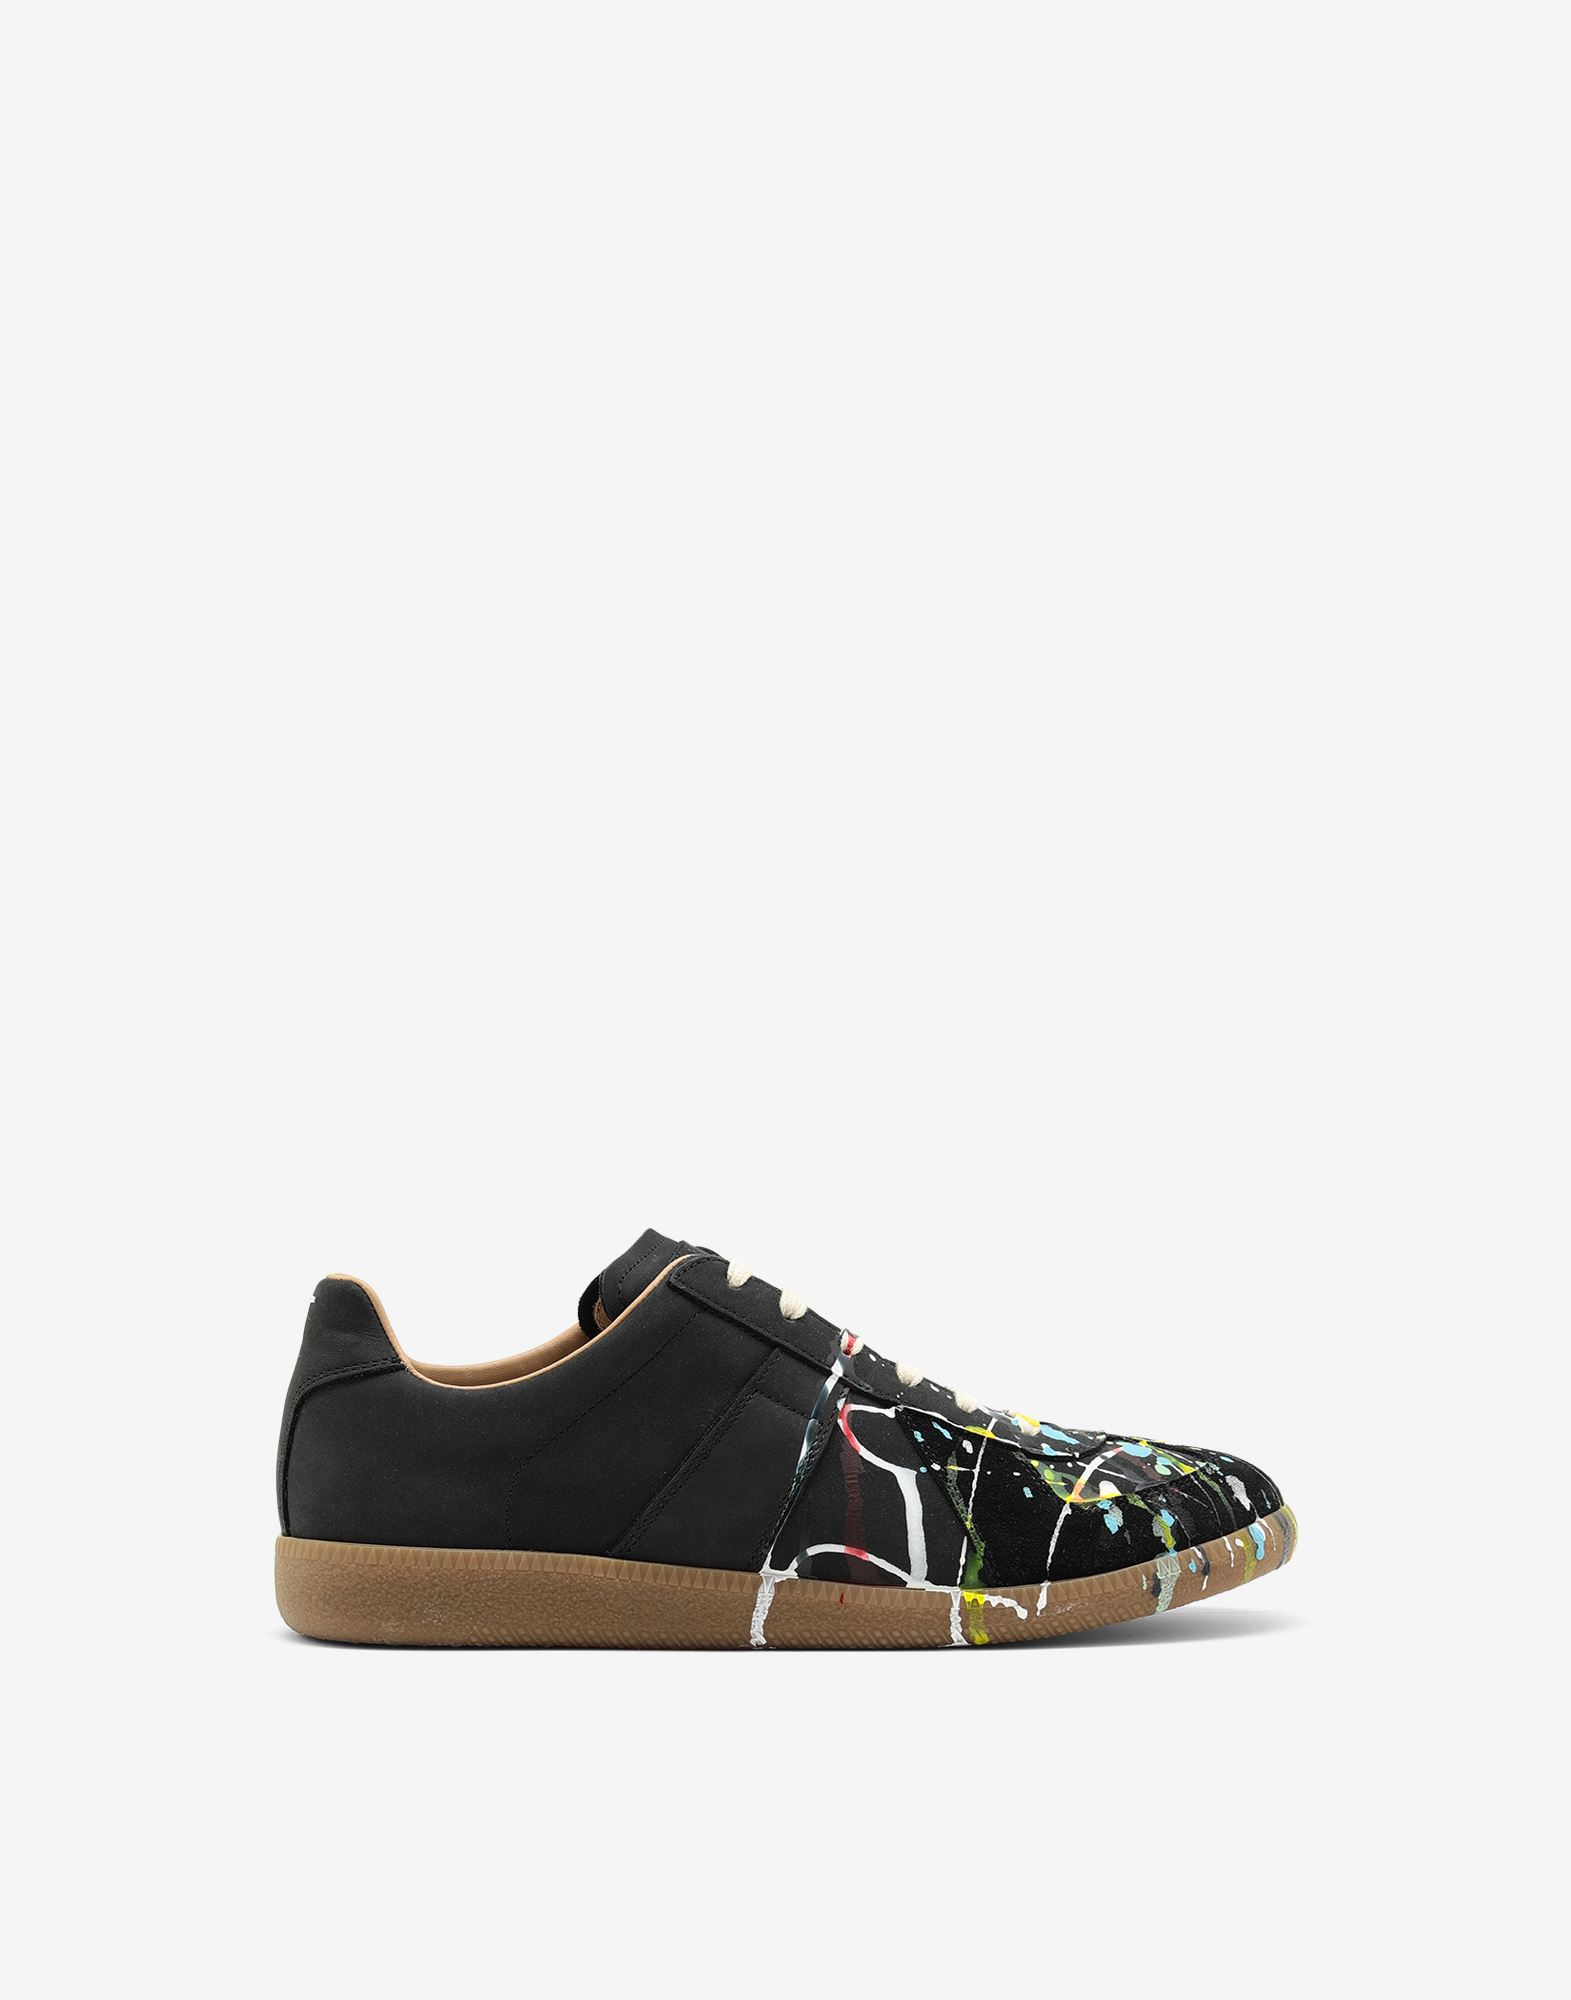 MAISON MARGIELA Suede paint drop 'Replica' sneakers Sneakers Man f